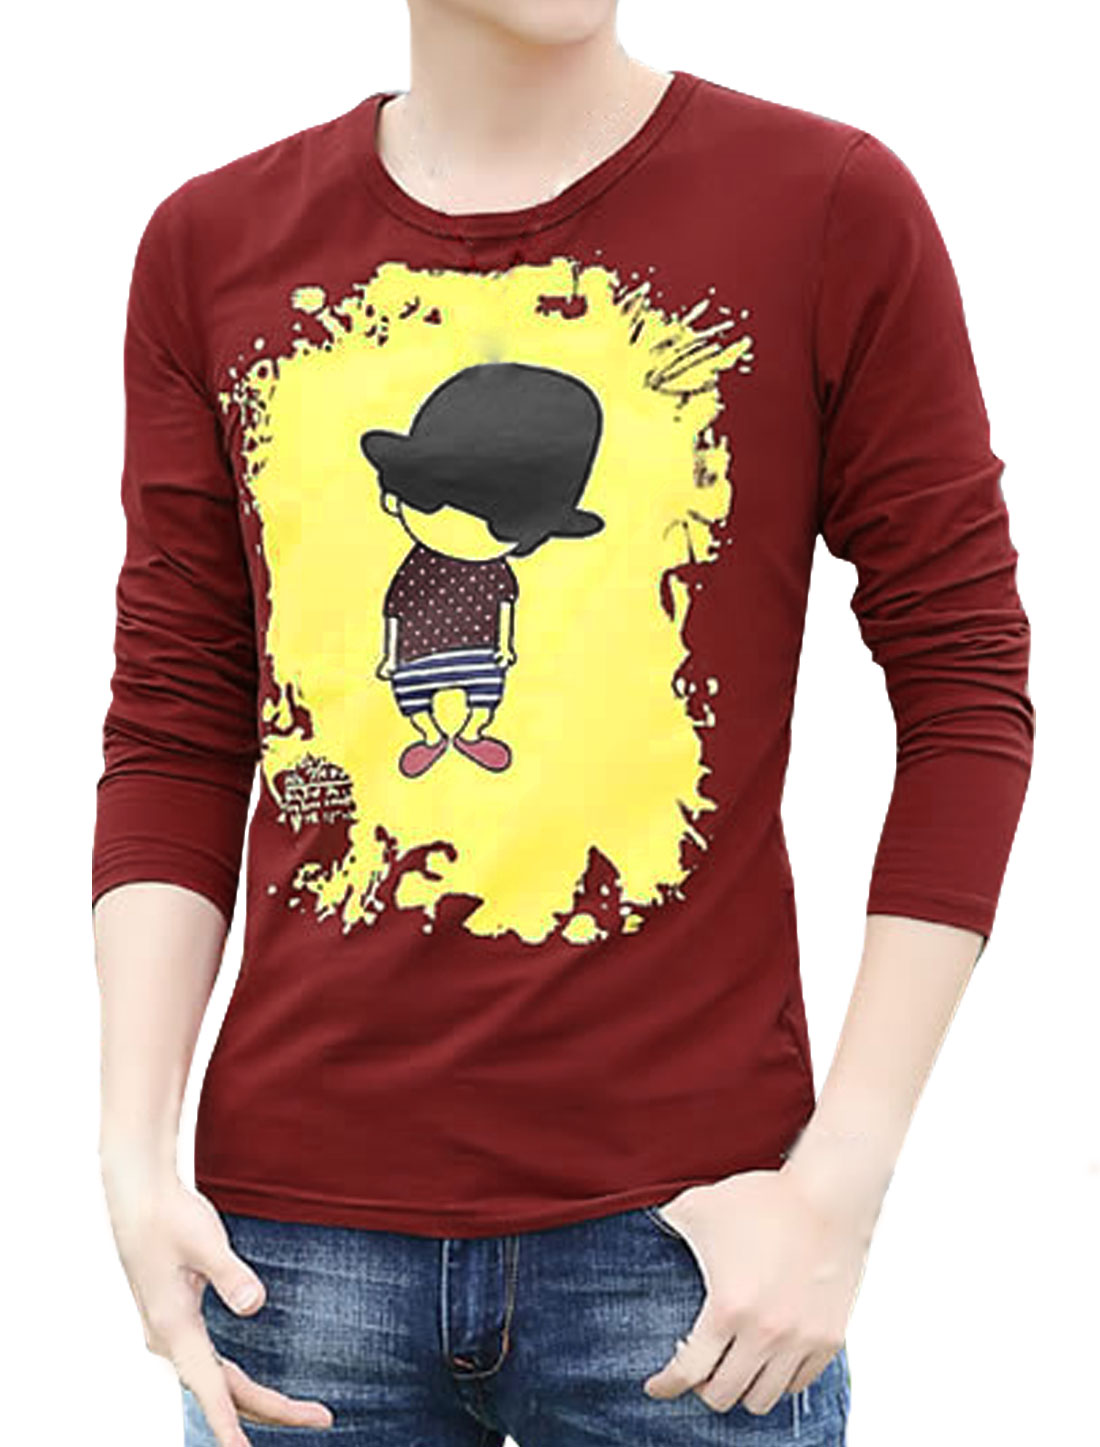 Men Long Sleeves Cartoon Slim Fit Tee Shirt Red S